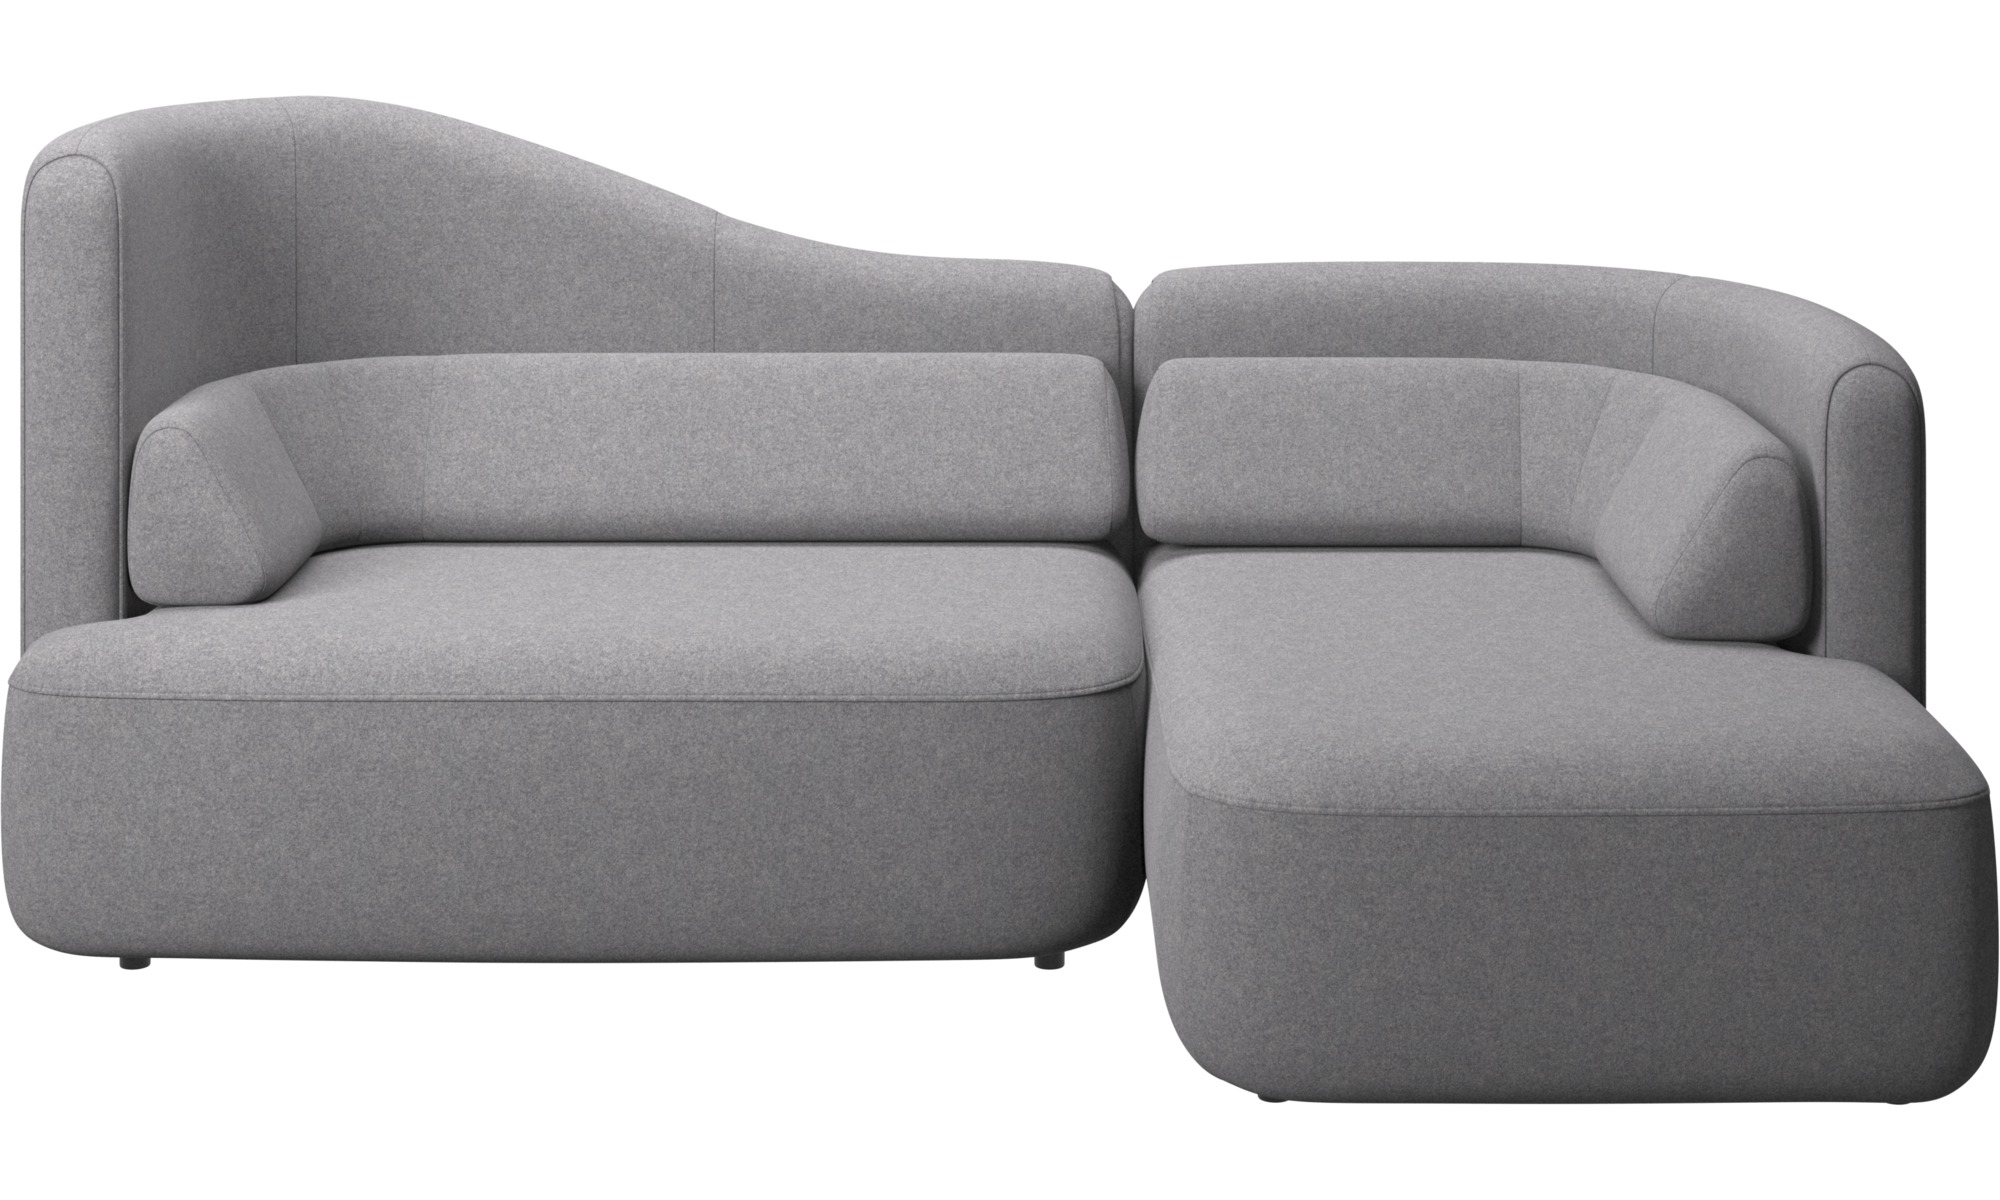 Mini Sofas With Newest Living Room : Modular Sofas For Small Spaces Space Saving Beds (View 9 of 20)